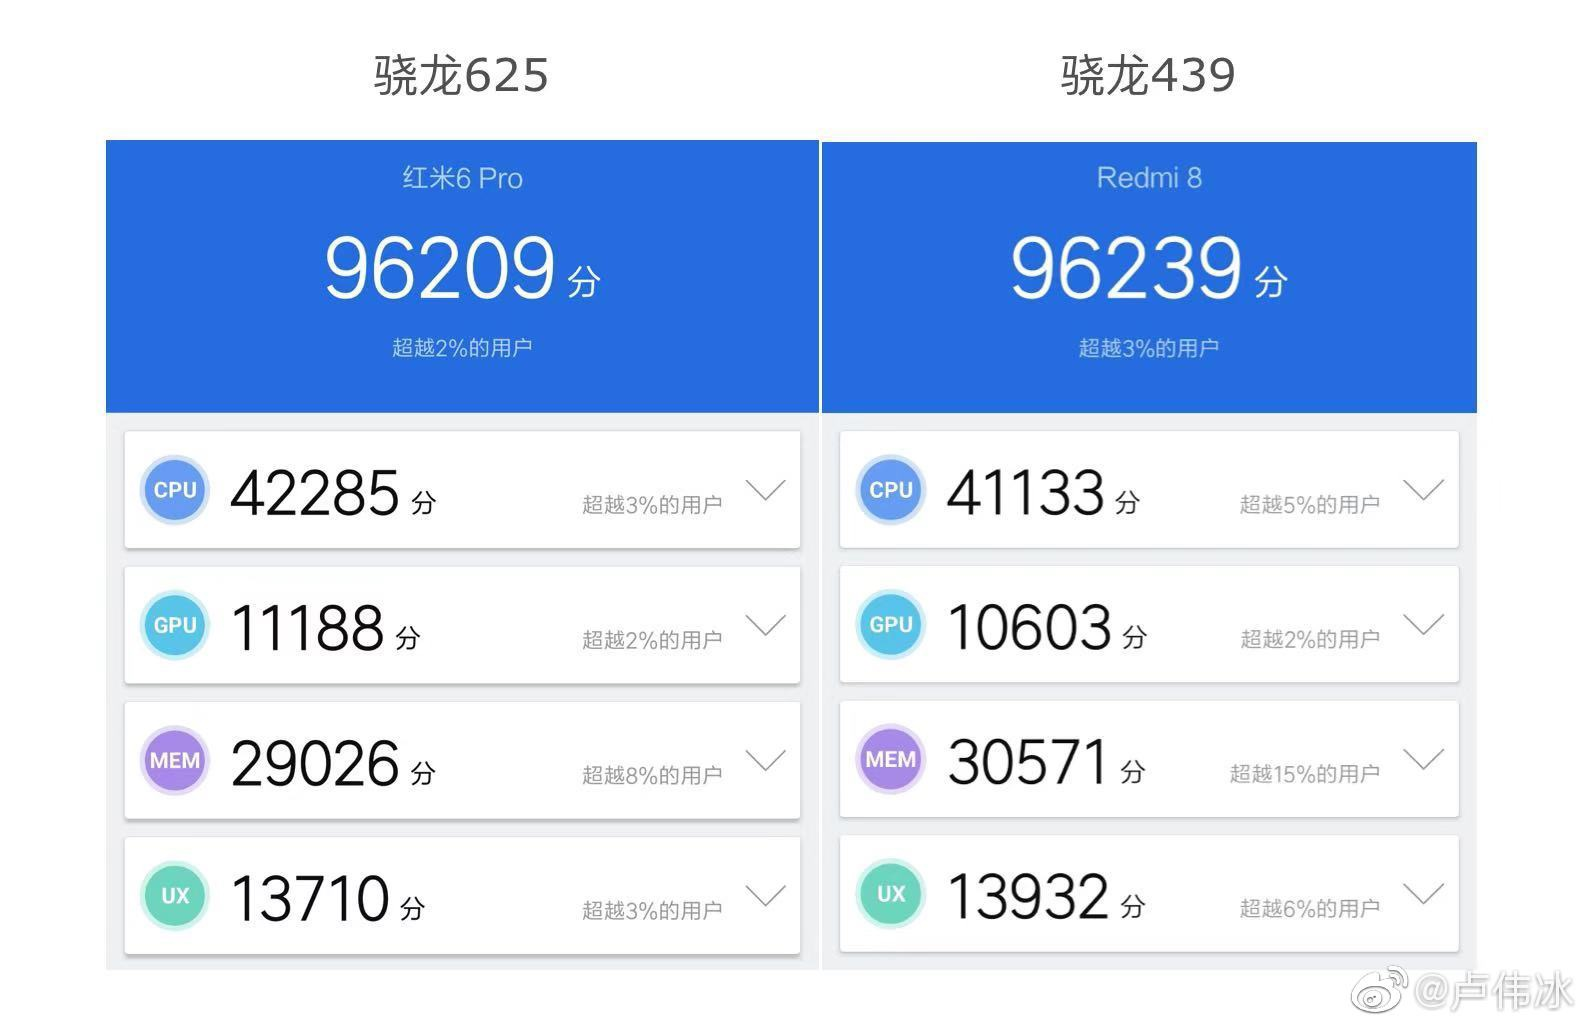 The Snapdragon 435 of the Redmi 8 yields almost equal to the Snapdragon 639 of the Redmi 7. Xiaomi Addicted News